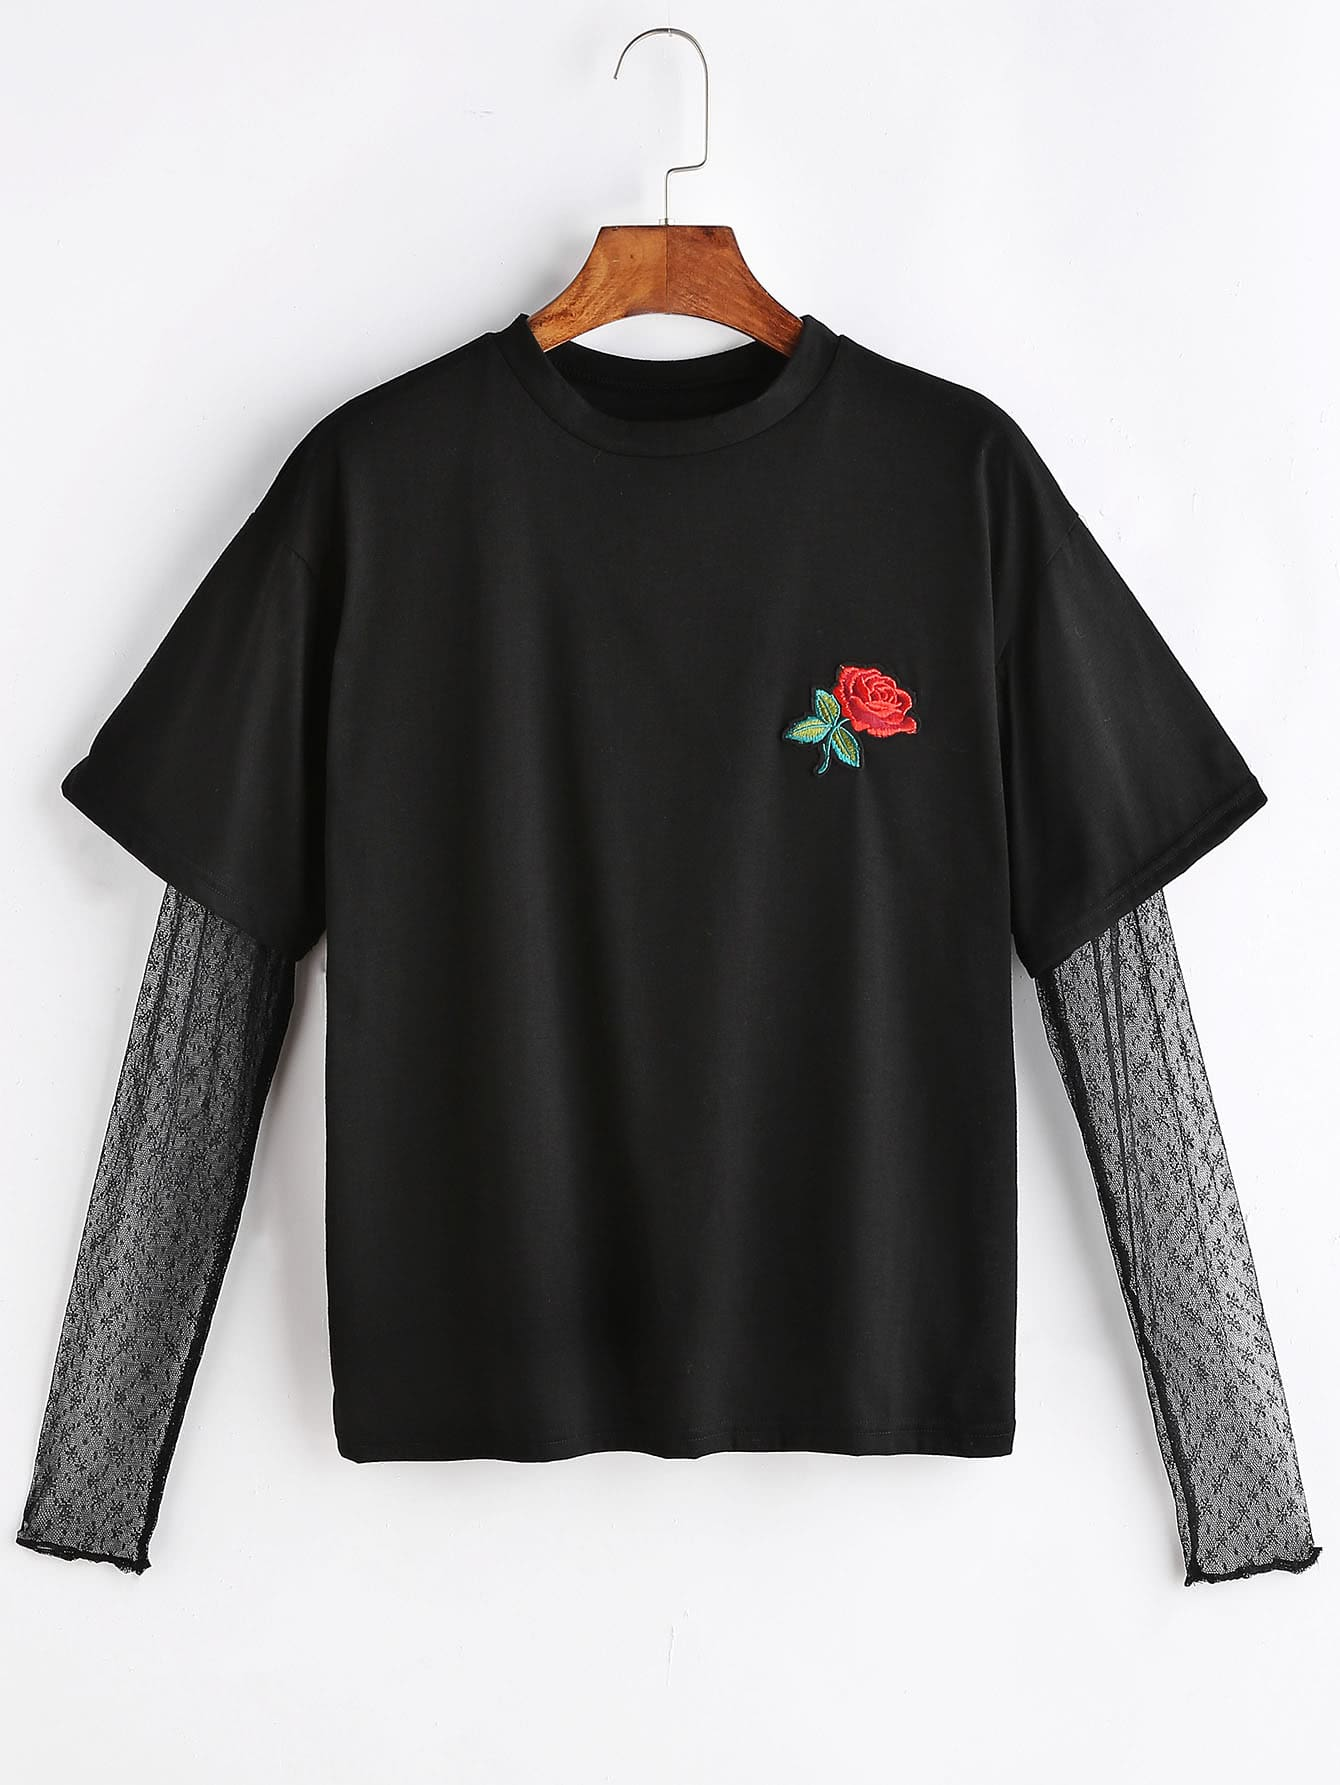 Rose embroidered patch contrast mesh sleeve 2 in 1 t shirt for Embroidered mesh t shirt